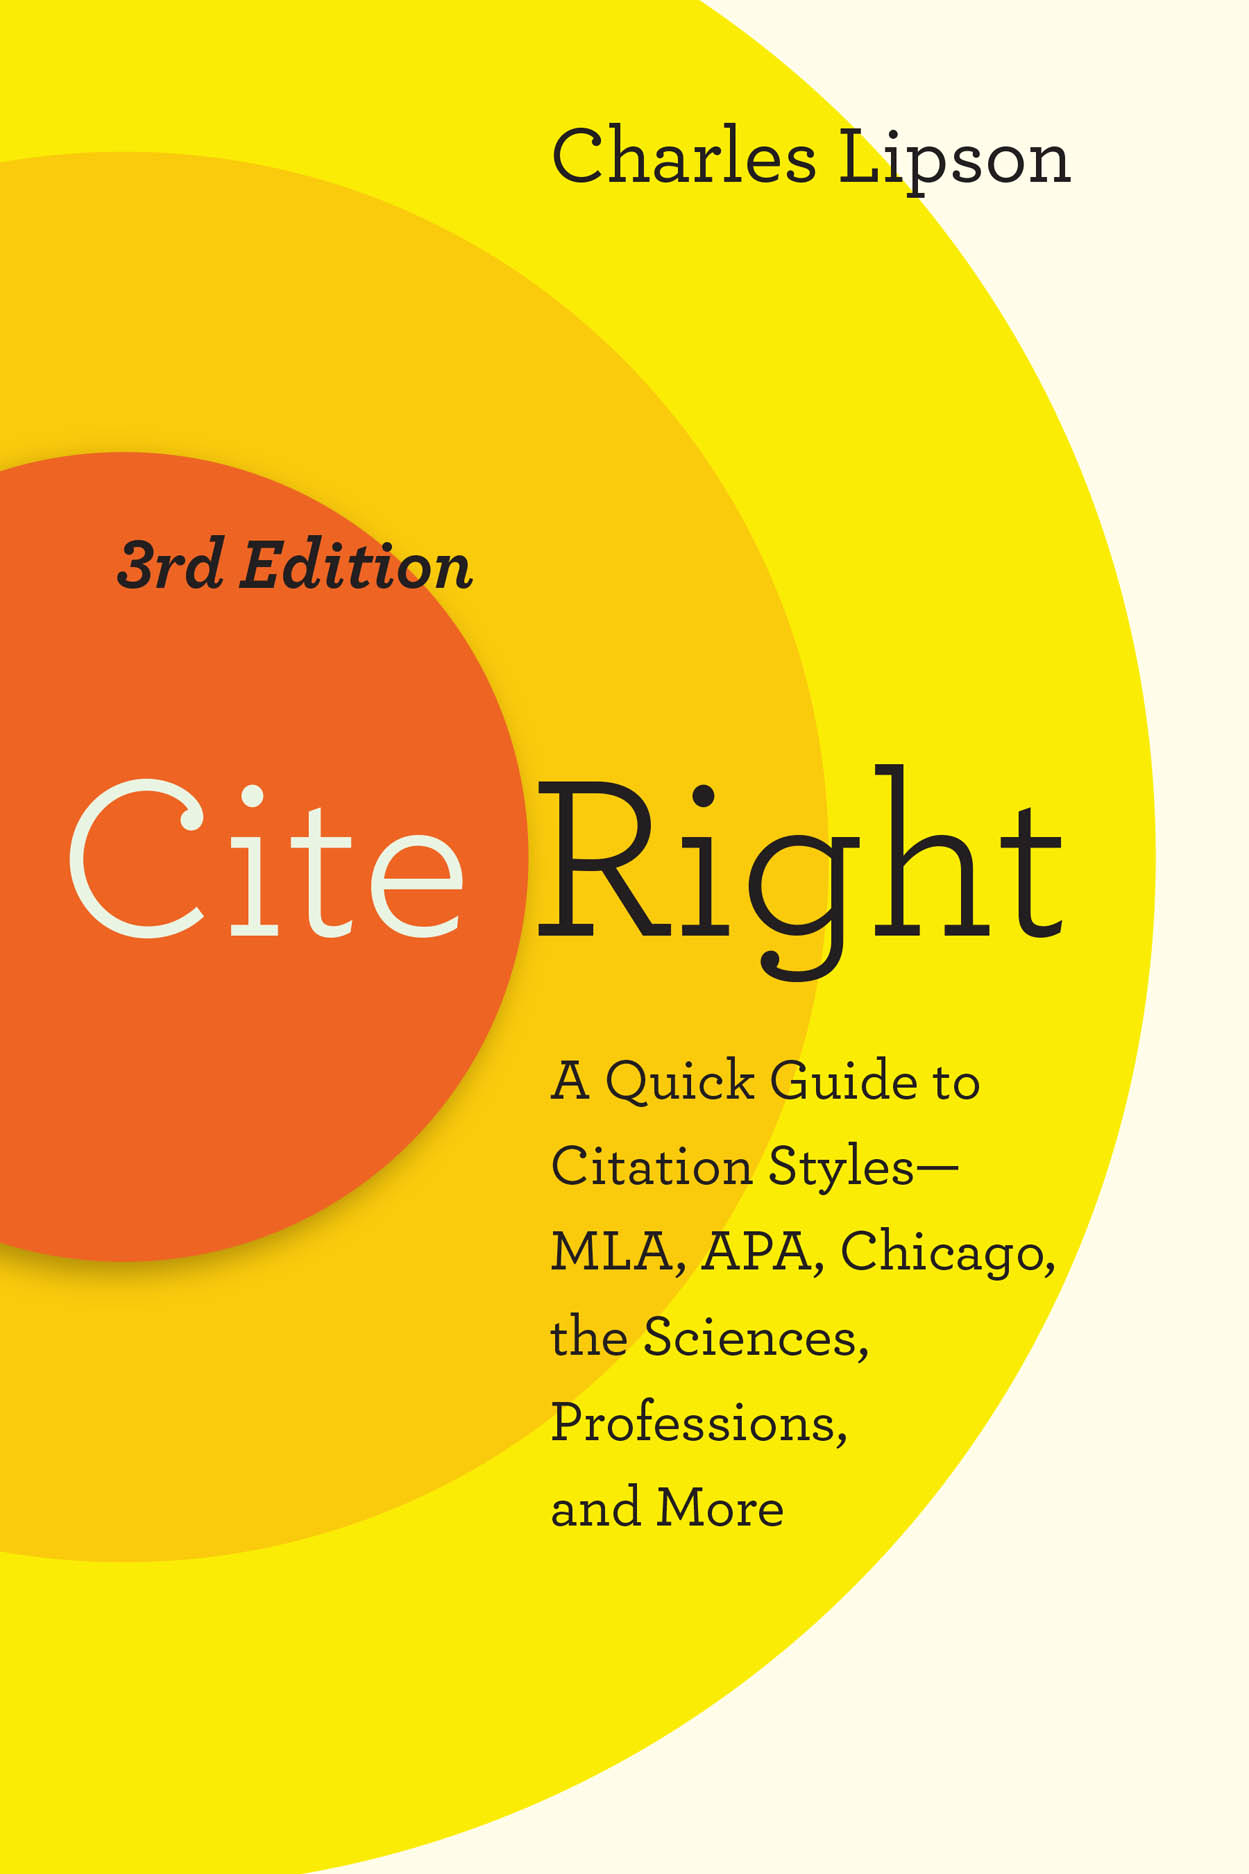 Cite Right, Third Edition: A Quick Guide to Citation Styles--MLA, APA, Chicago, the Sciences, Professions, and More